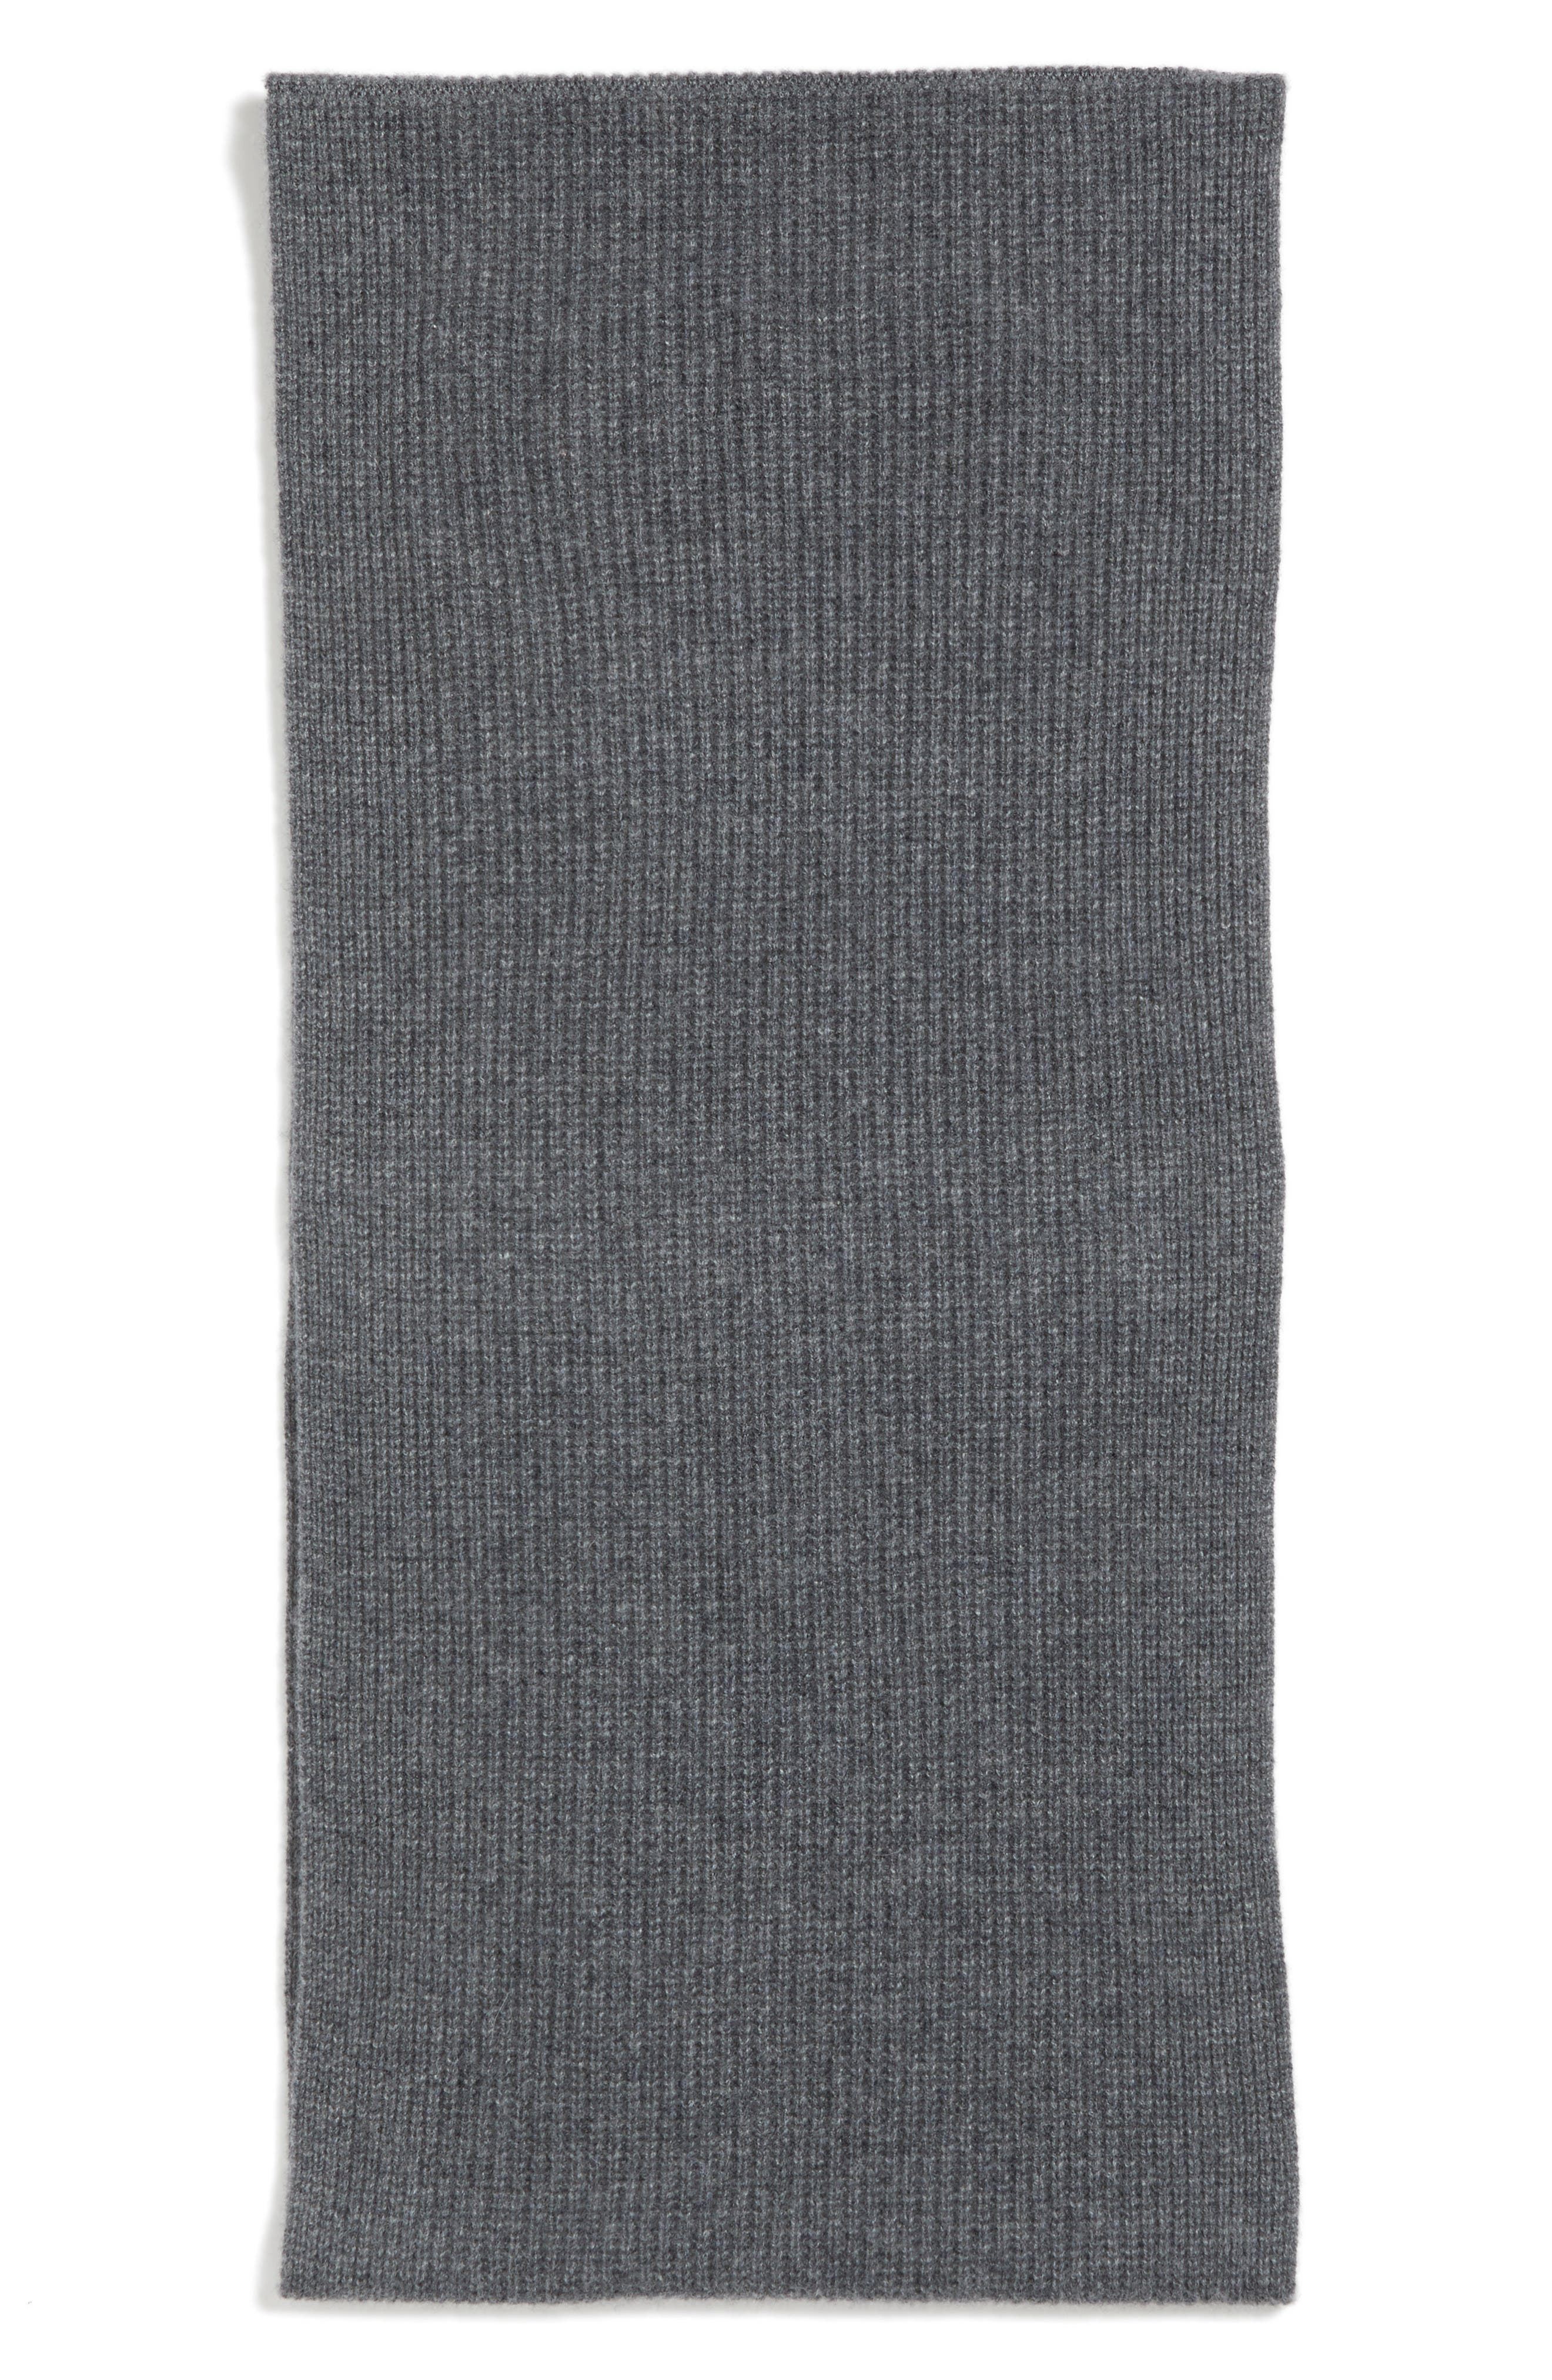 Cashmere Infinity Scarf,                             Alternate thumbnail 15, color,